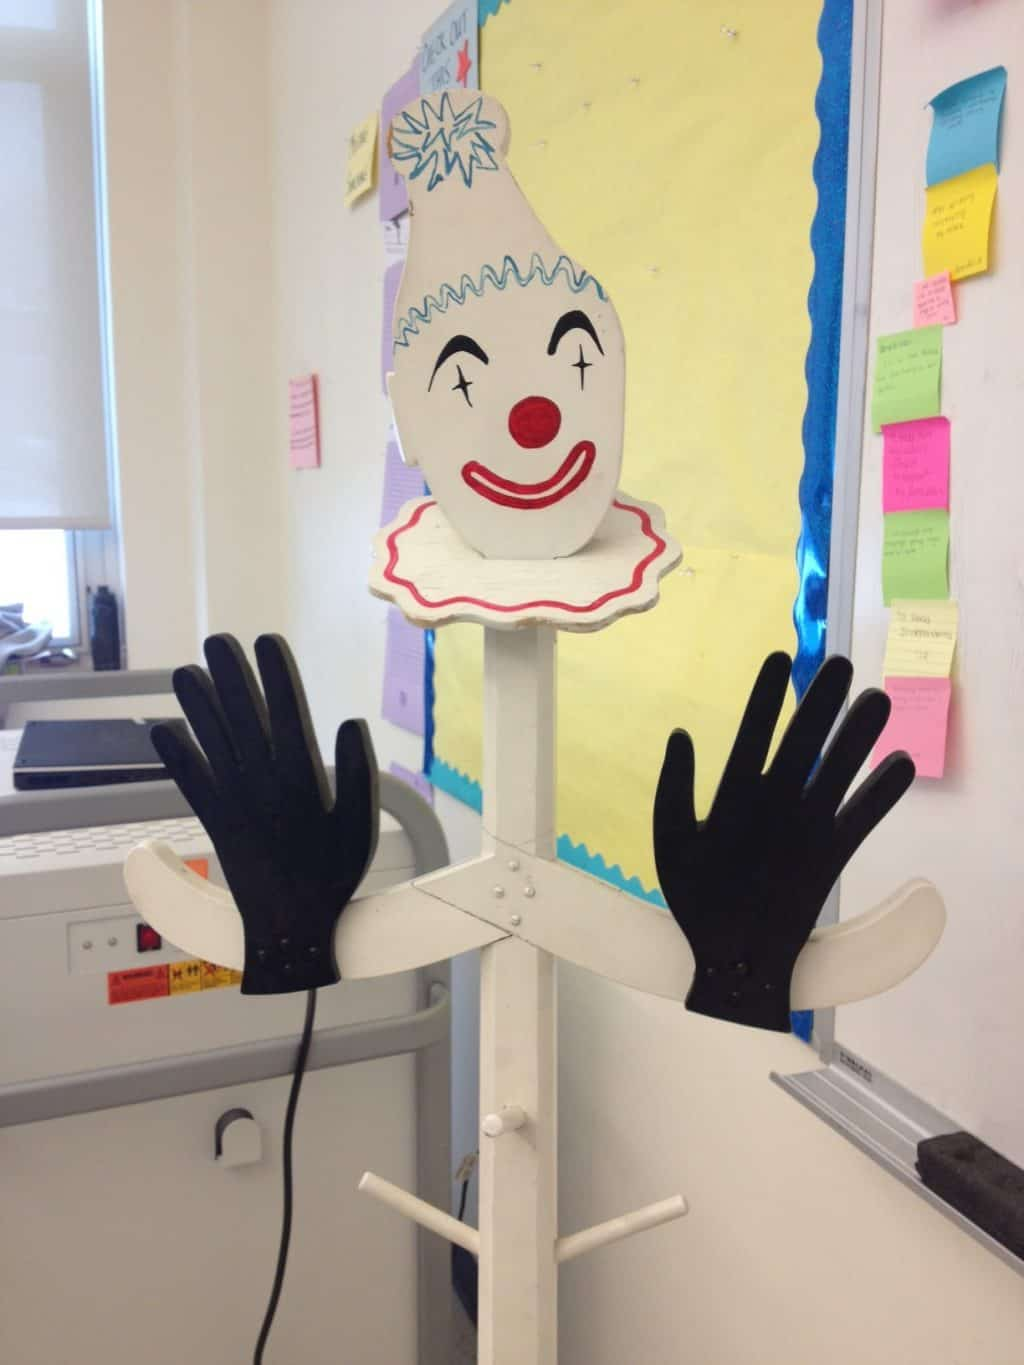 View of classroom with clown made of paper in foreground.